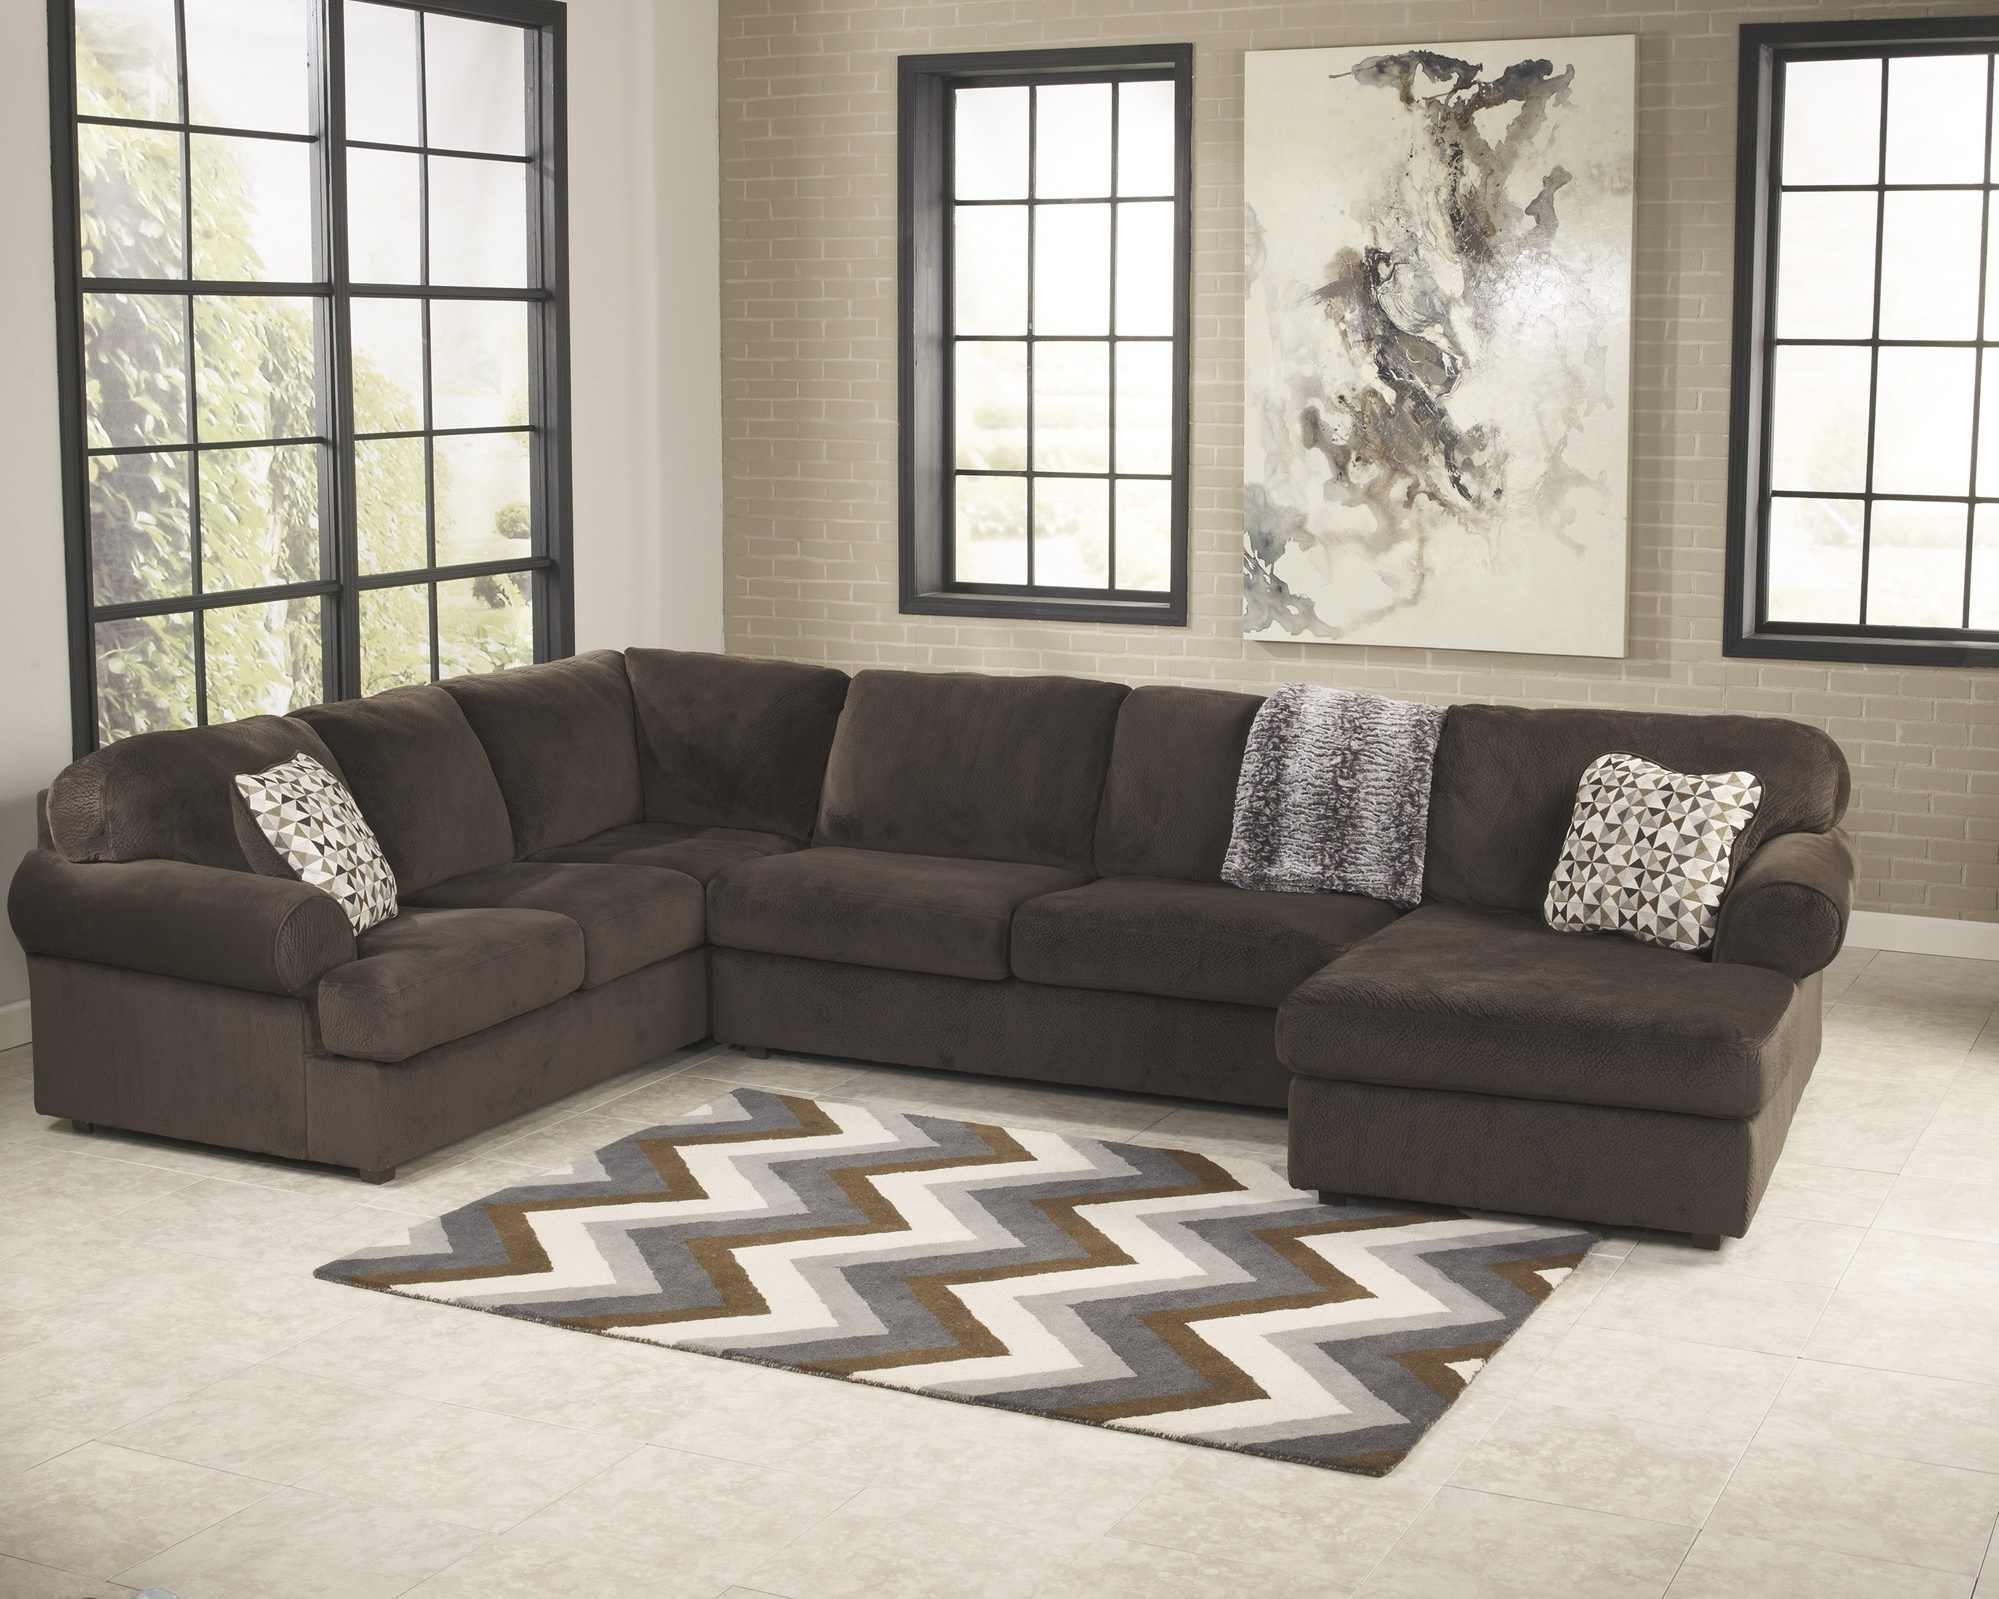 Well Known Jessa Place Chocolate 3 Piece Sectional Sofa For $ (View 19 of 20)